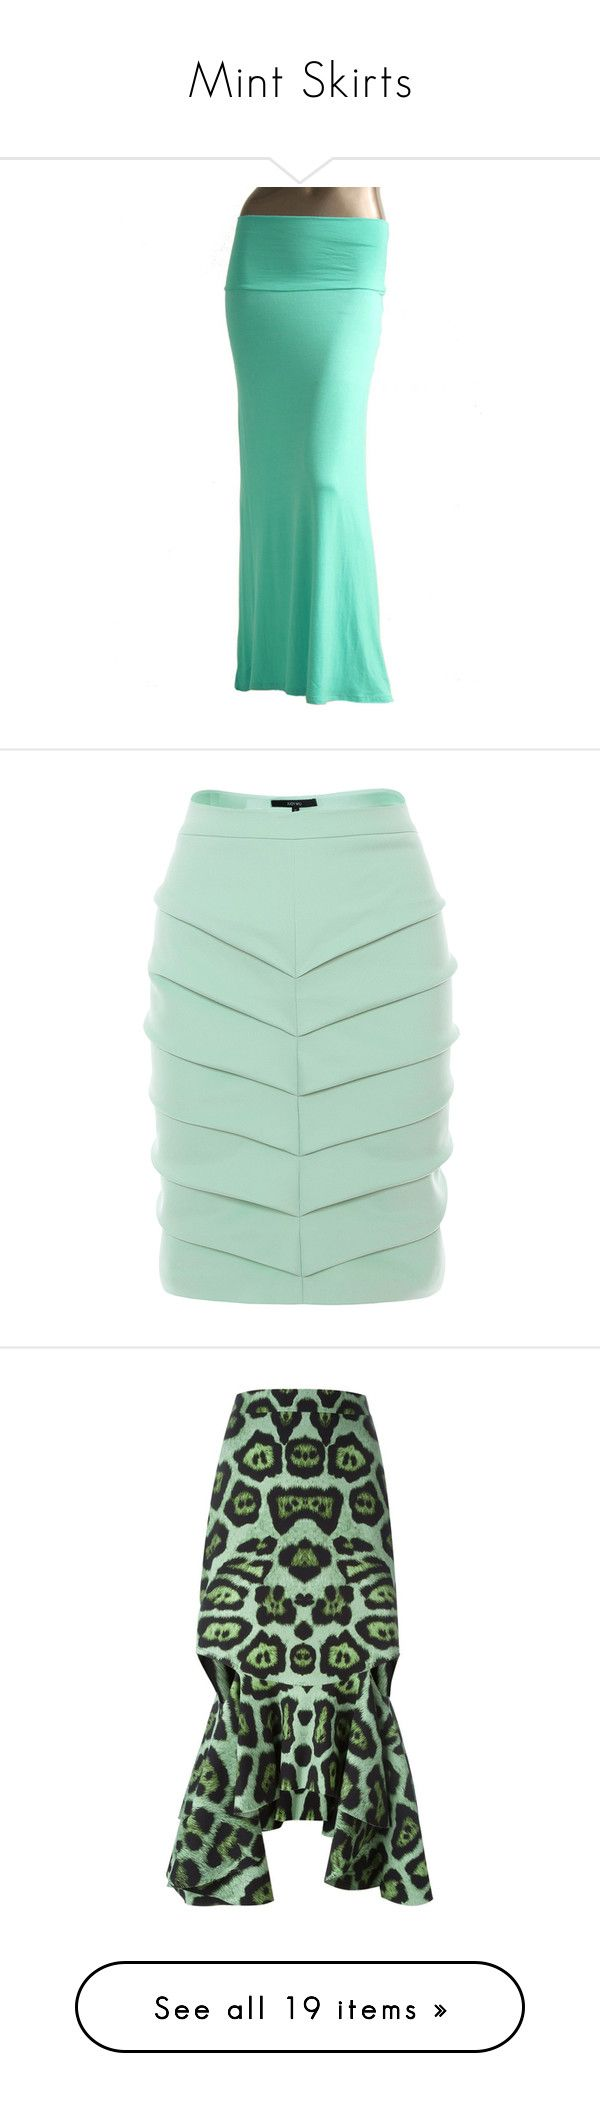 """Mint Skirts"" by eternalfeatherfilm on Polyvore featuring skirts, turquoise, ankle length skirt, long green skirt, mint skirts, floor length skirts, mint green skirt, bottoms, green pencil skirt and fold-over maxi skirt"